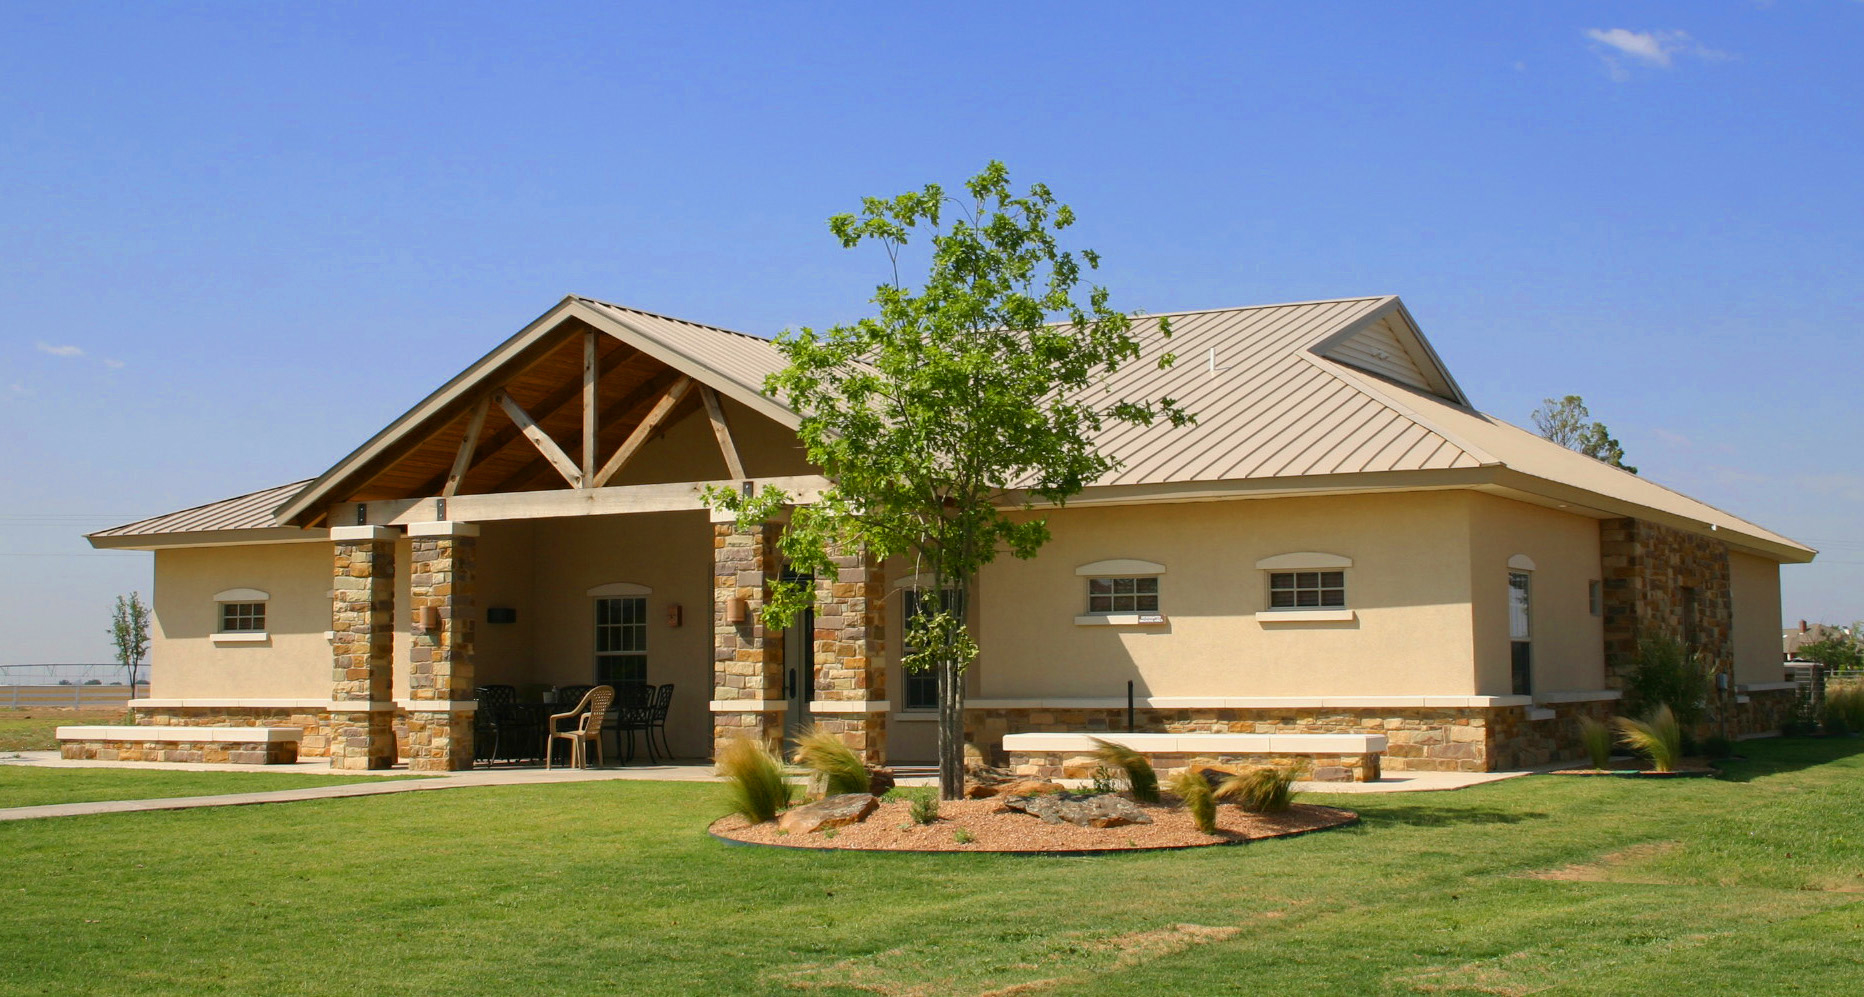 The Ranch at Dove Tree